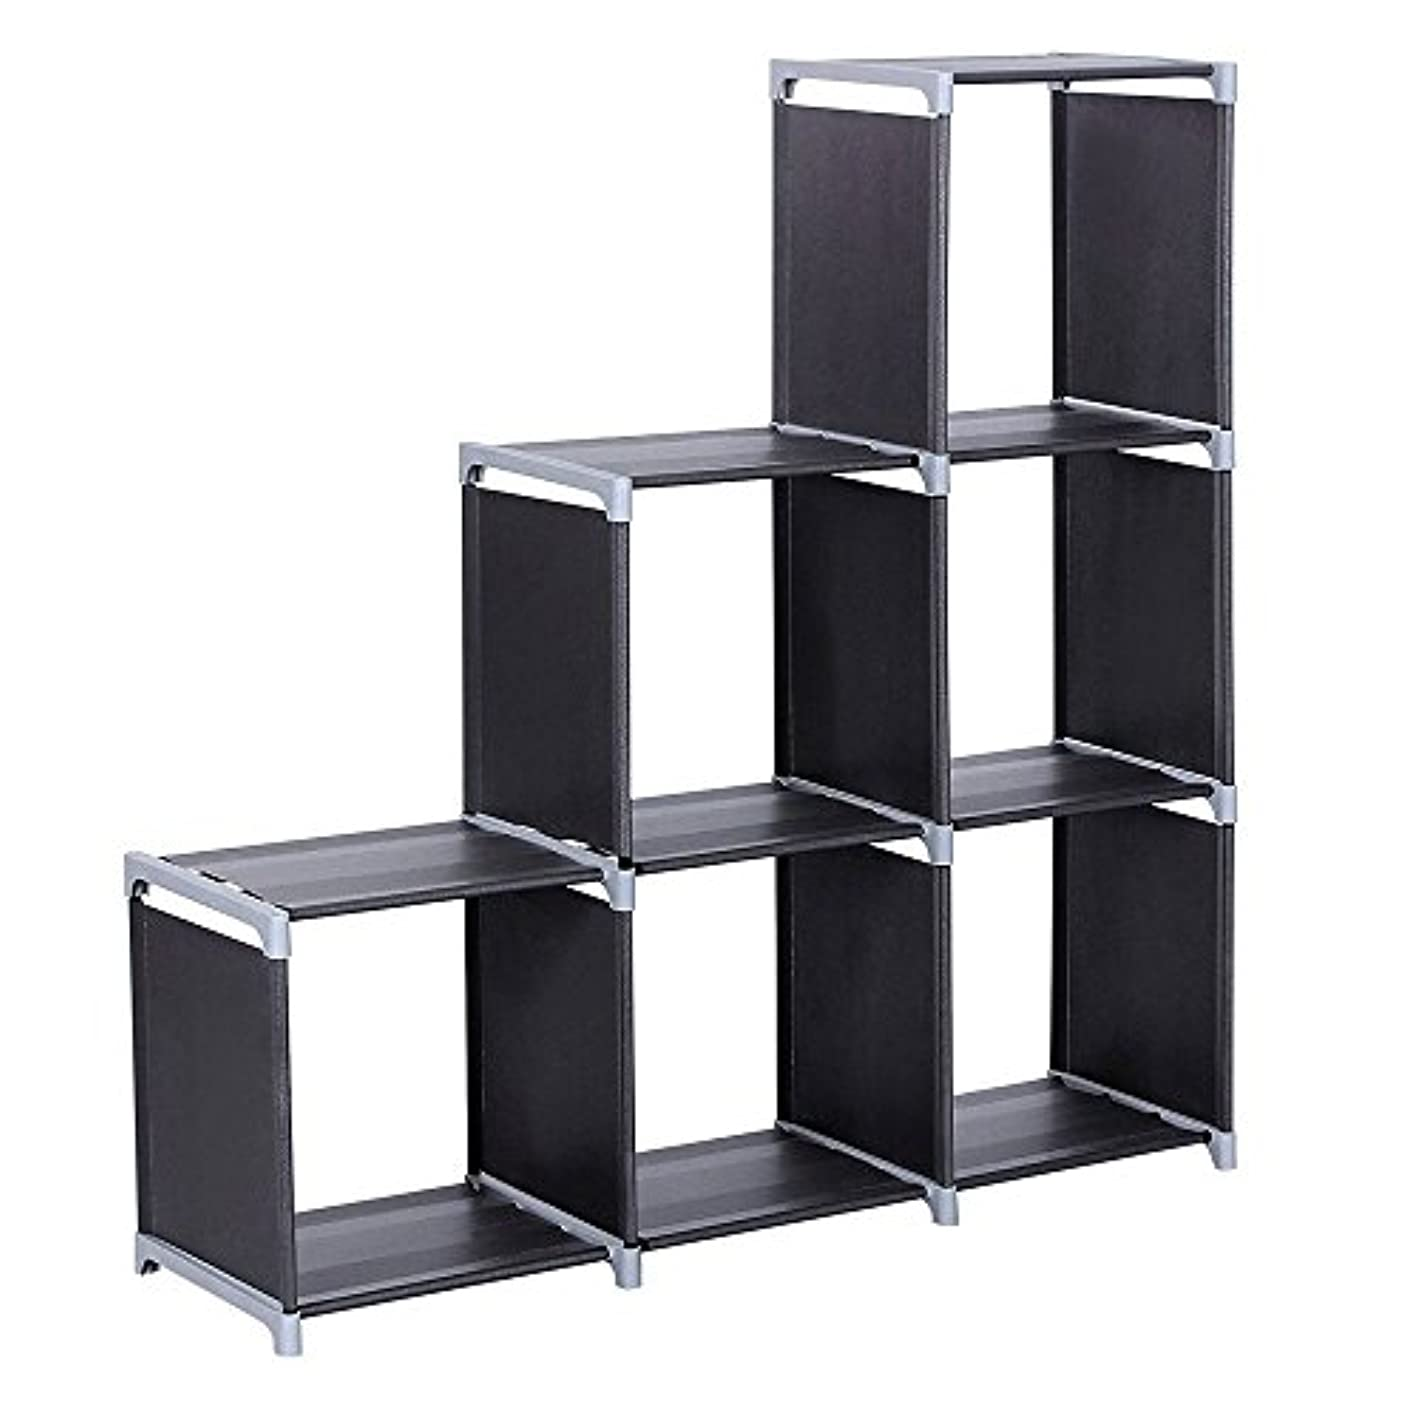 3 Tier Bookcase, 6-Cube Space-Saving Book Storage Cabinet Closet Organizer Shelf for Kids Bedroom Living Room Office (US Stock) (3 Tier 6 Cubes-Black) wyhjno9380035